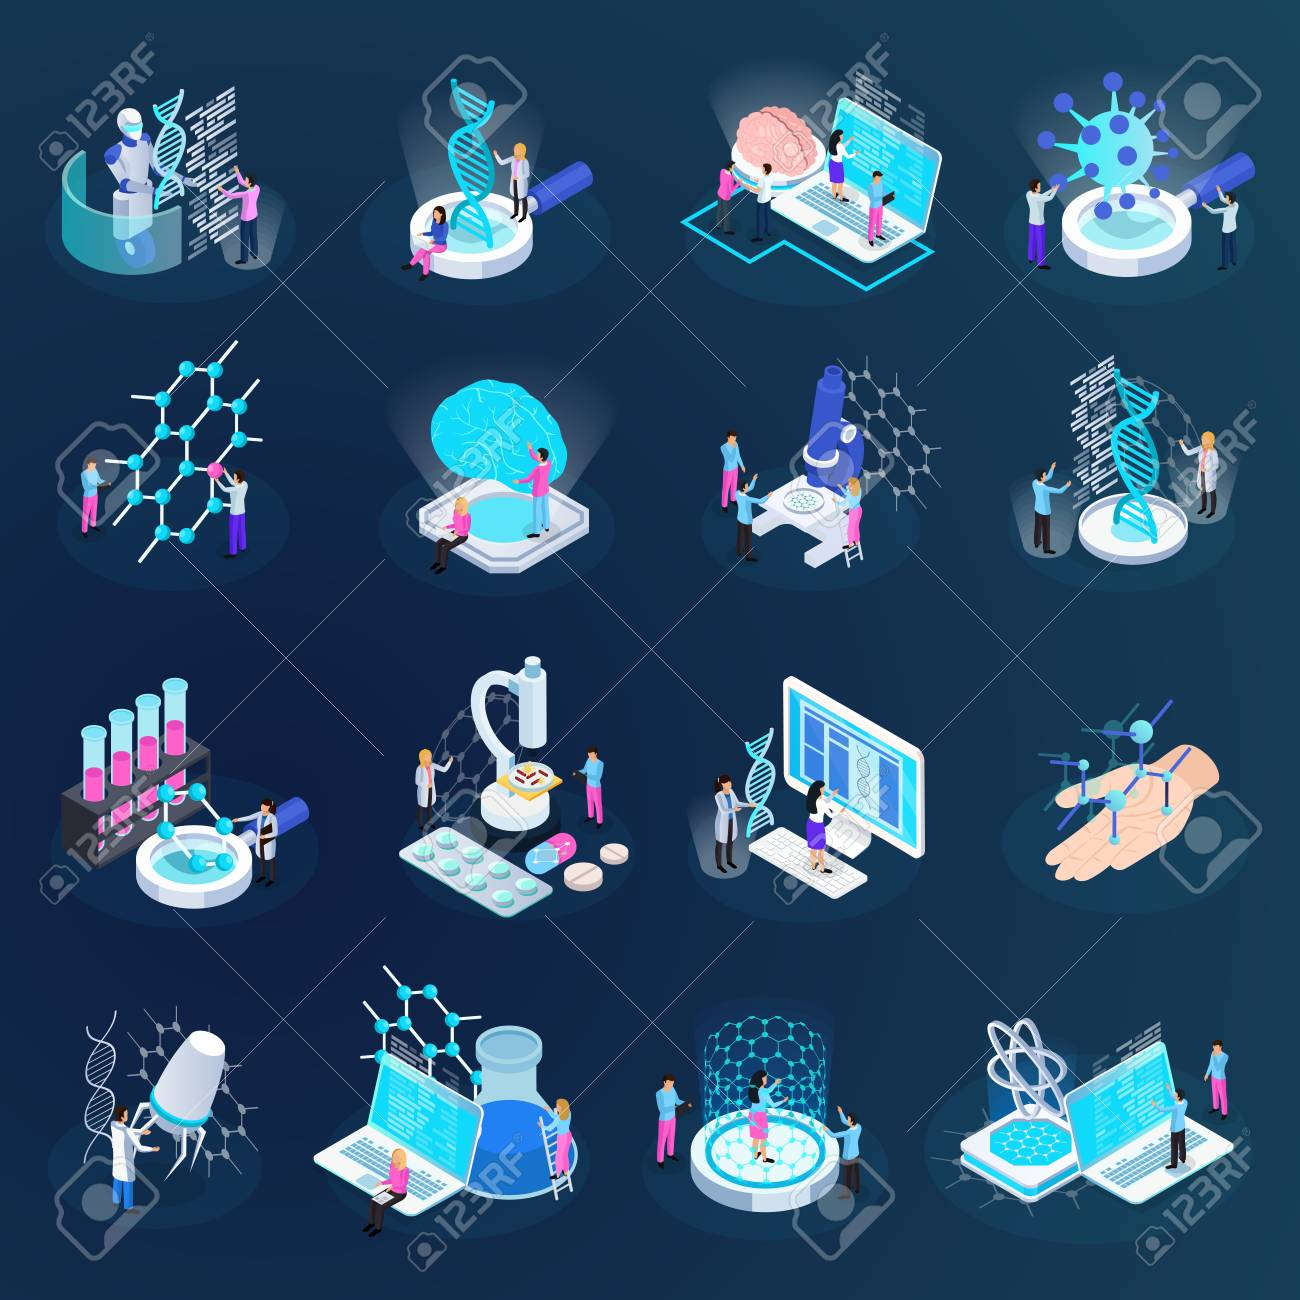 Scientists during nano technology development set of isometric icons isolated on dark gradient background vector illustration - 110199722